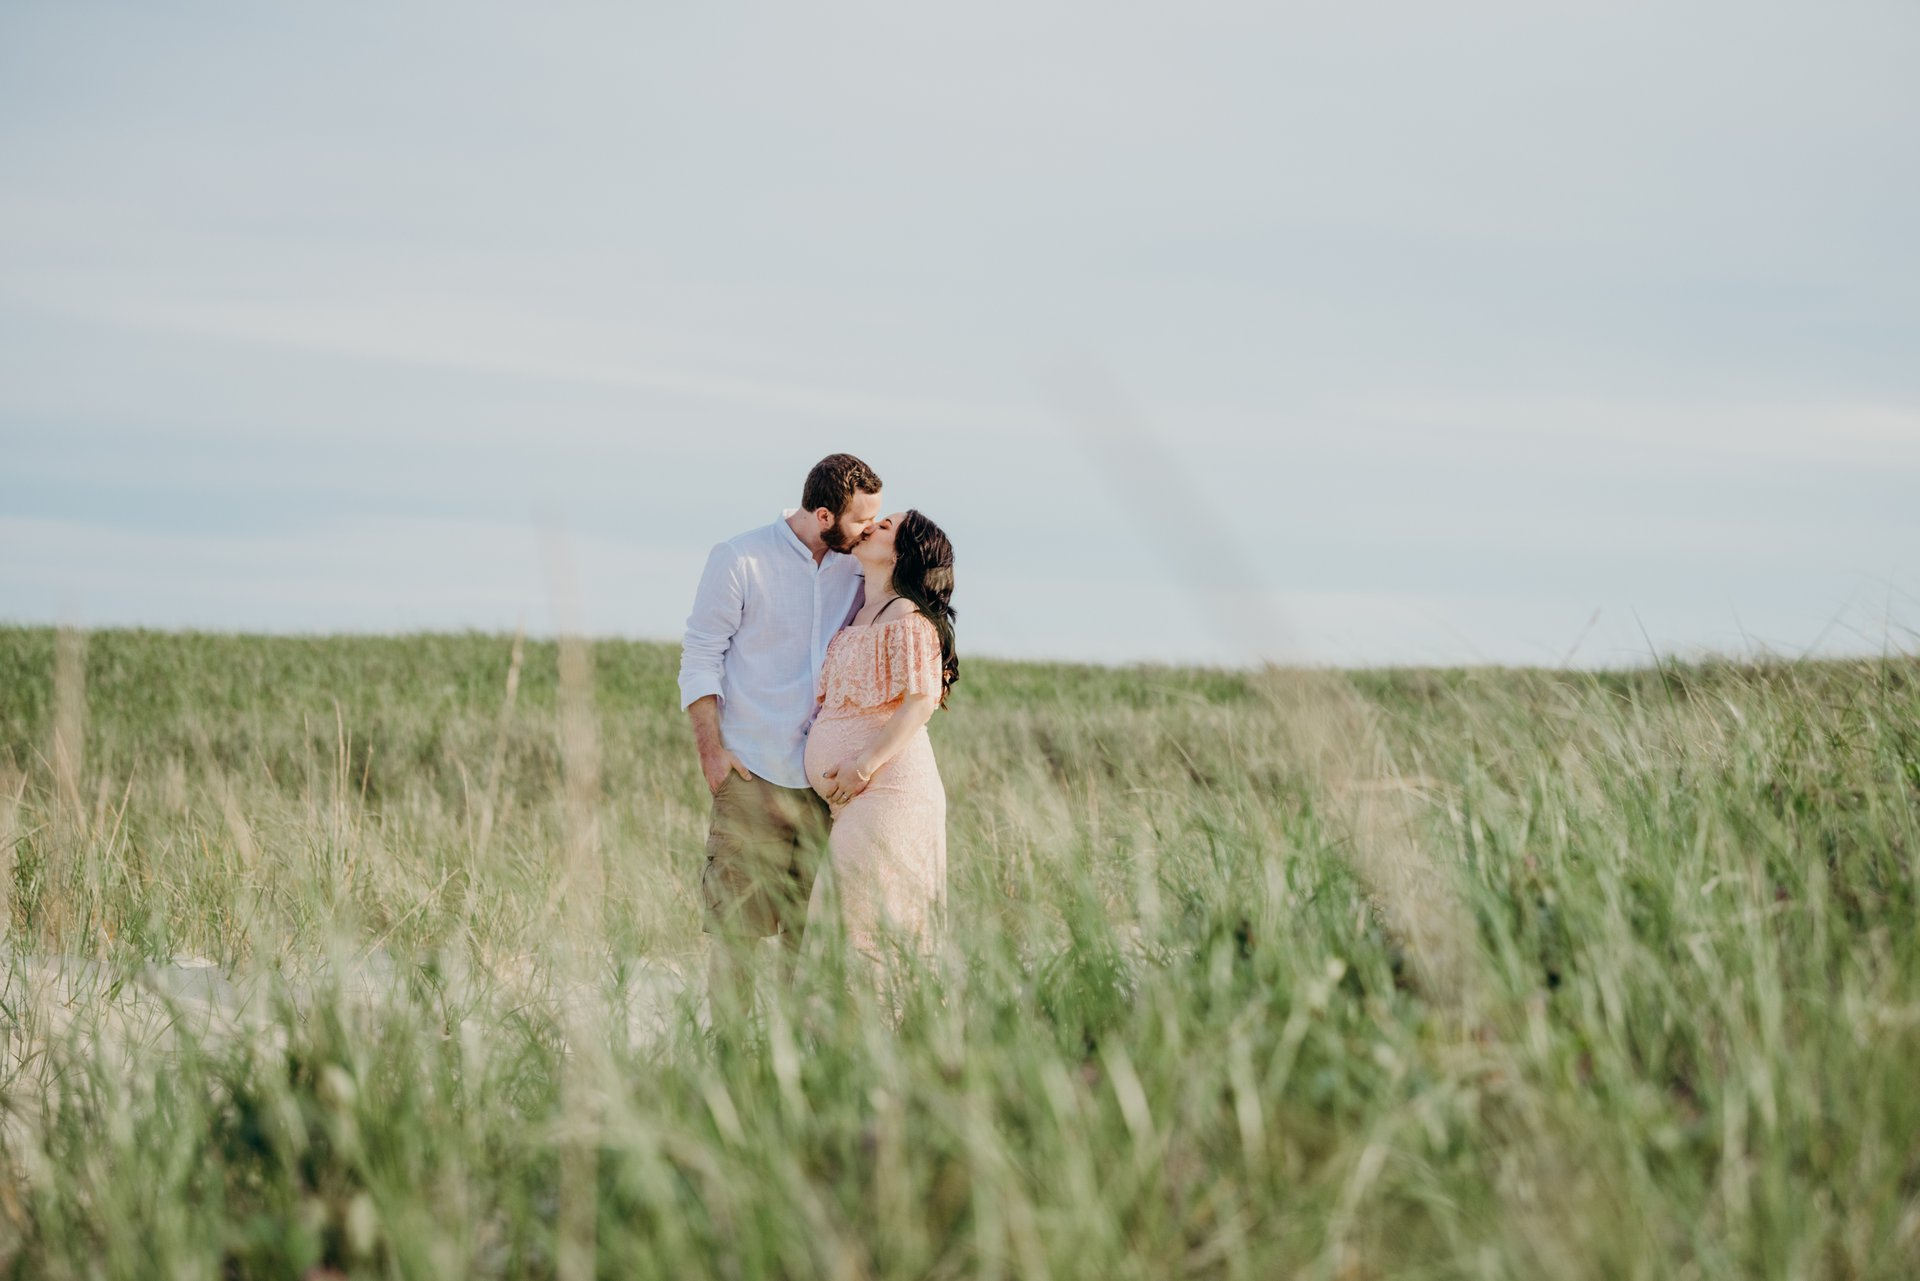 Flytographer Travel Story - Our Cape Cod Babymoon